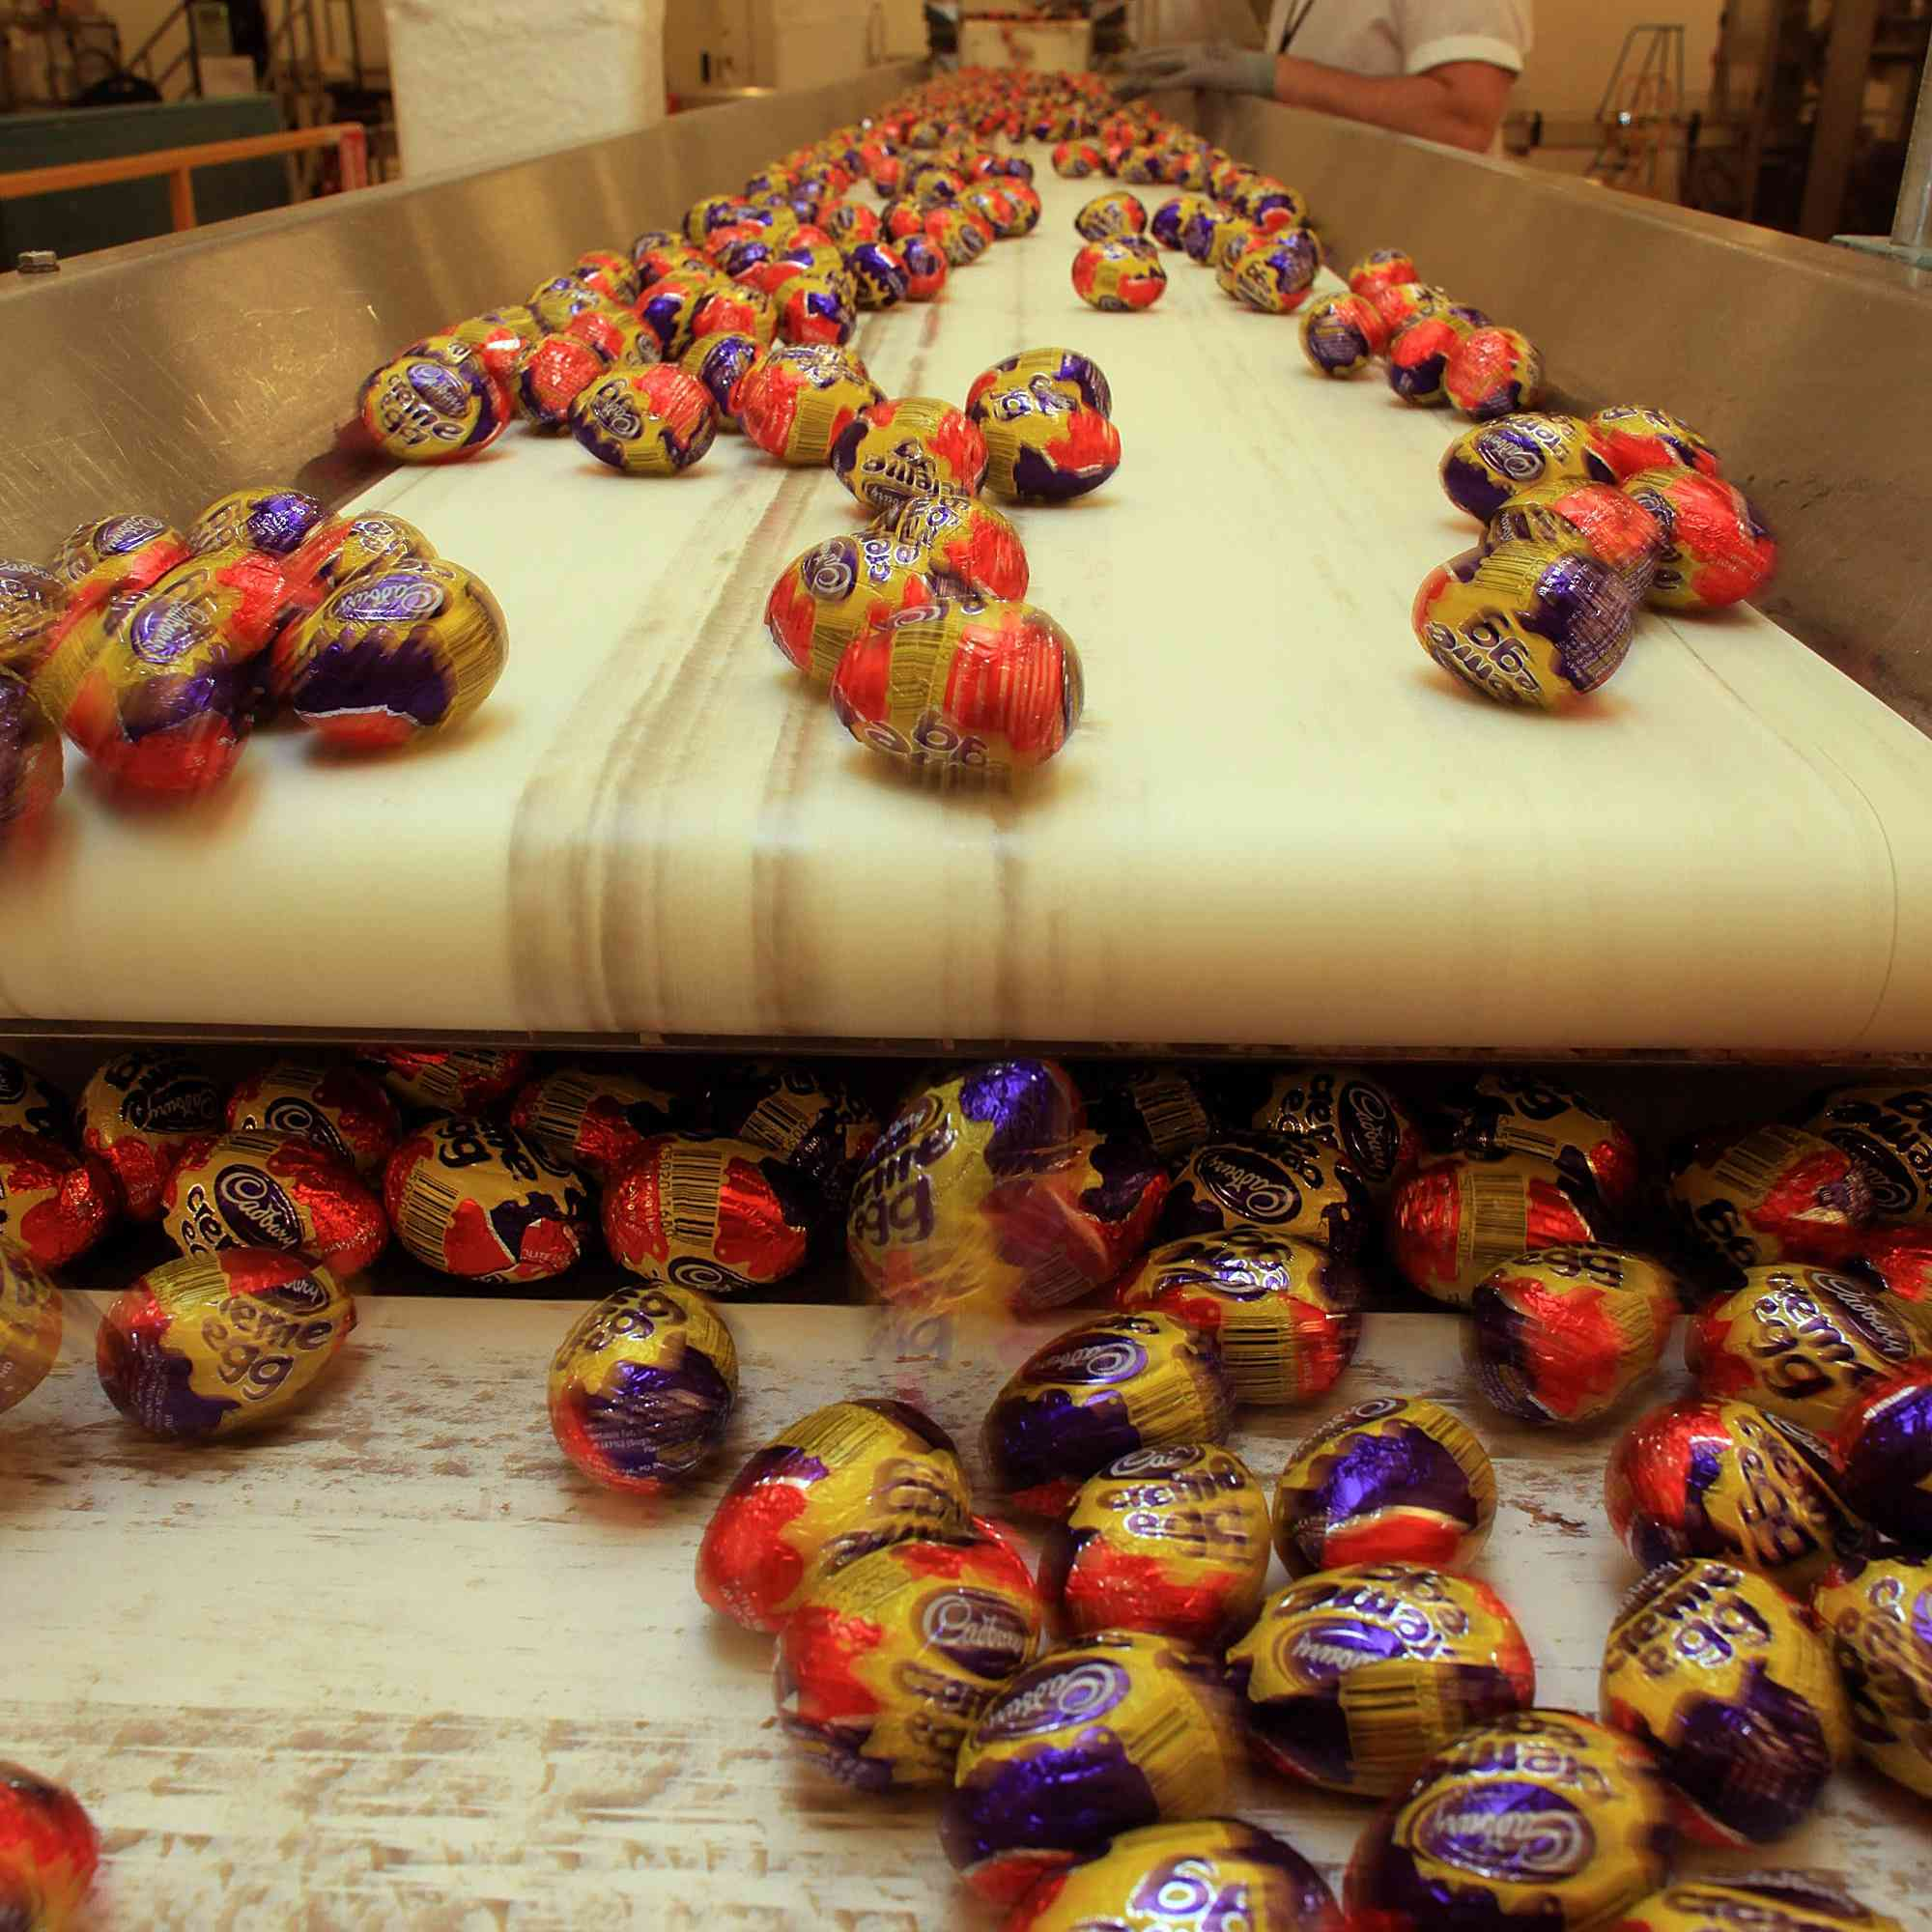 Easter Chocolate Production At Cadbury